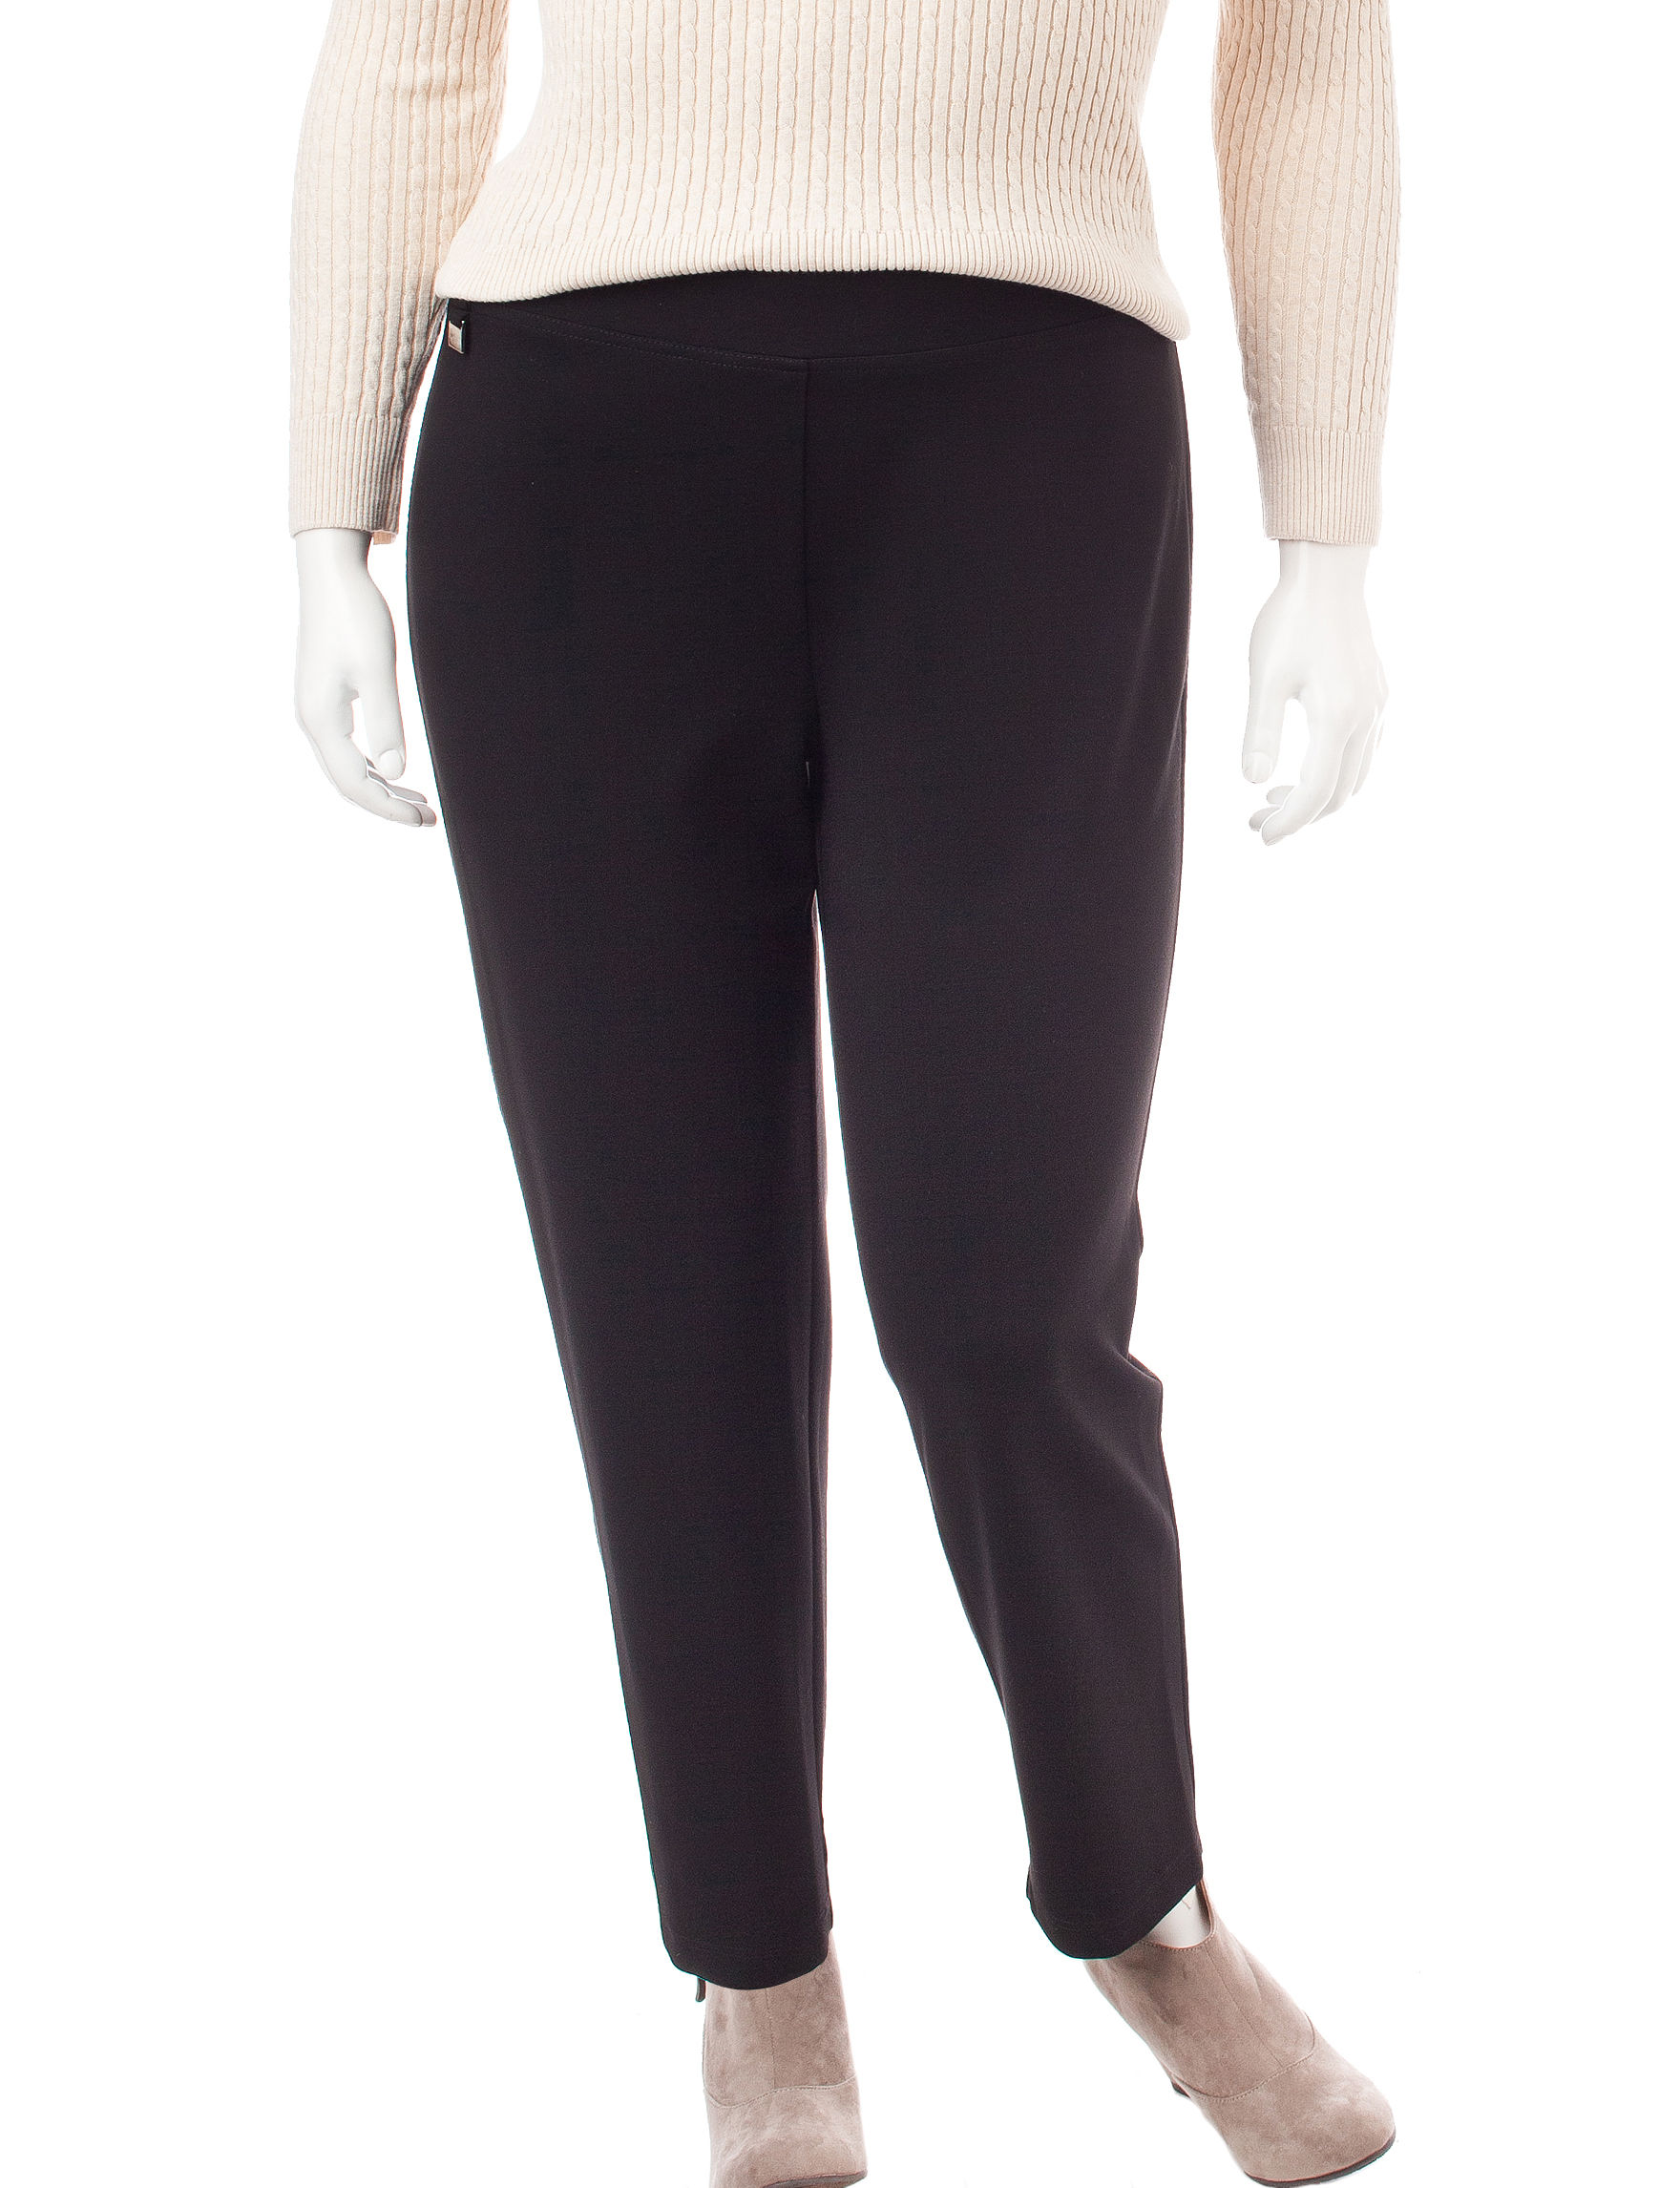 Popular 29 Off Old Navy Pants  HighRise Compression PlusSize Cropped Pants